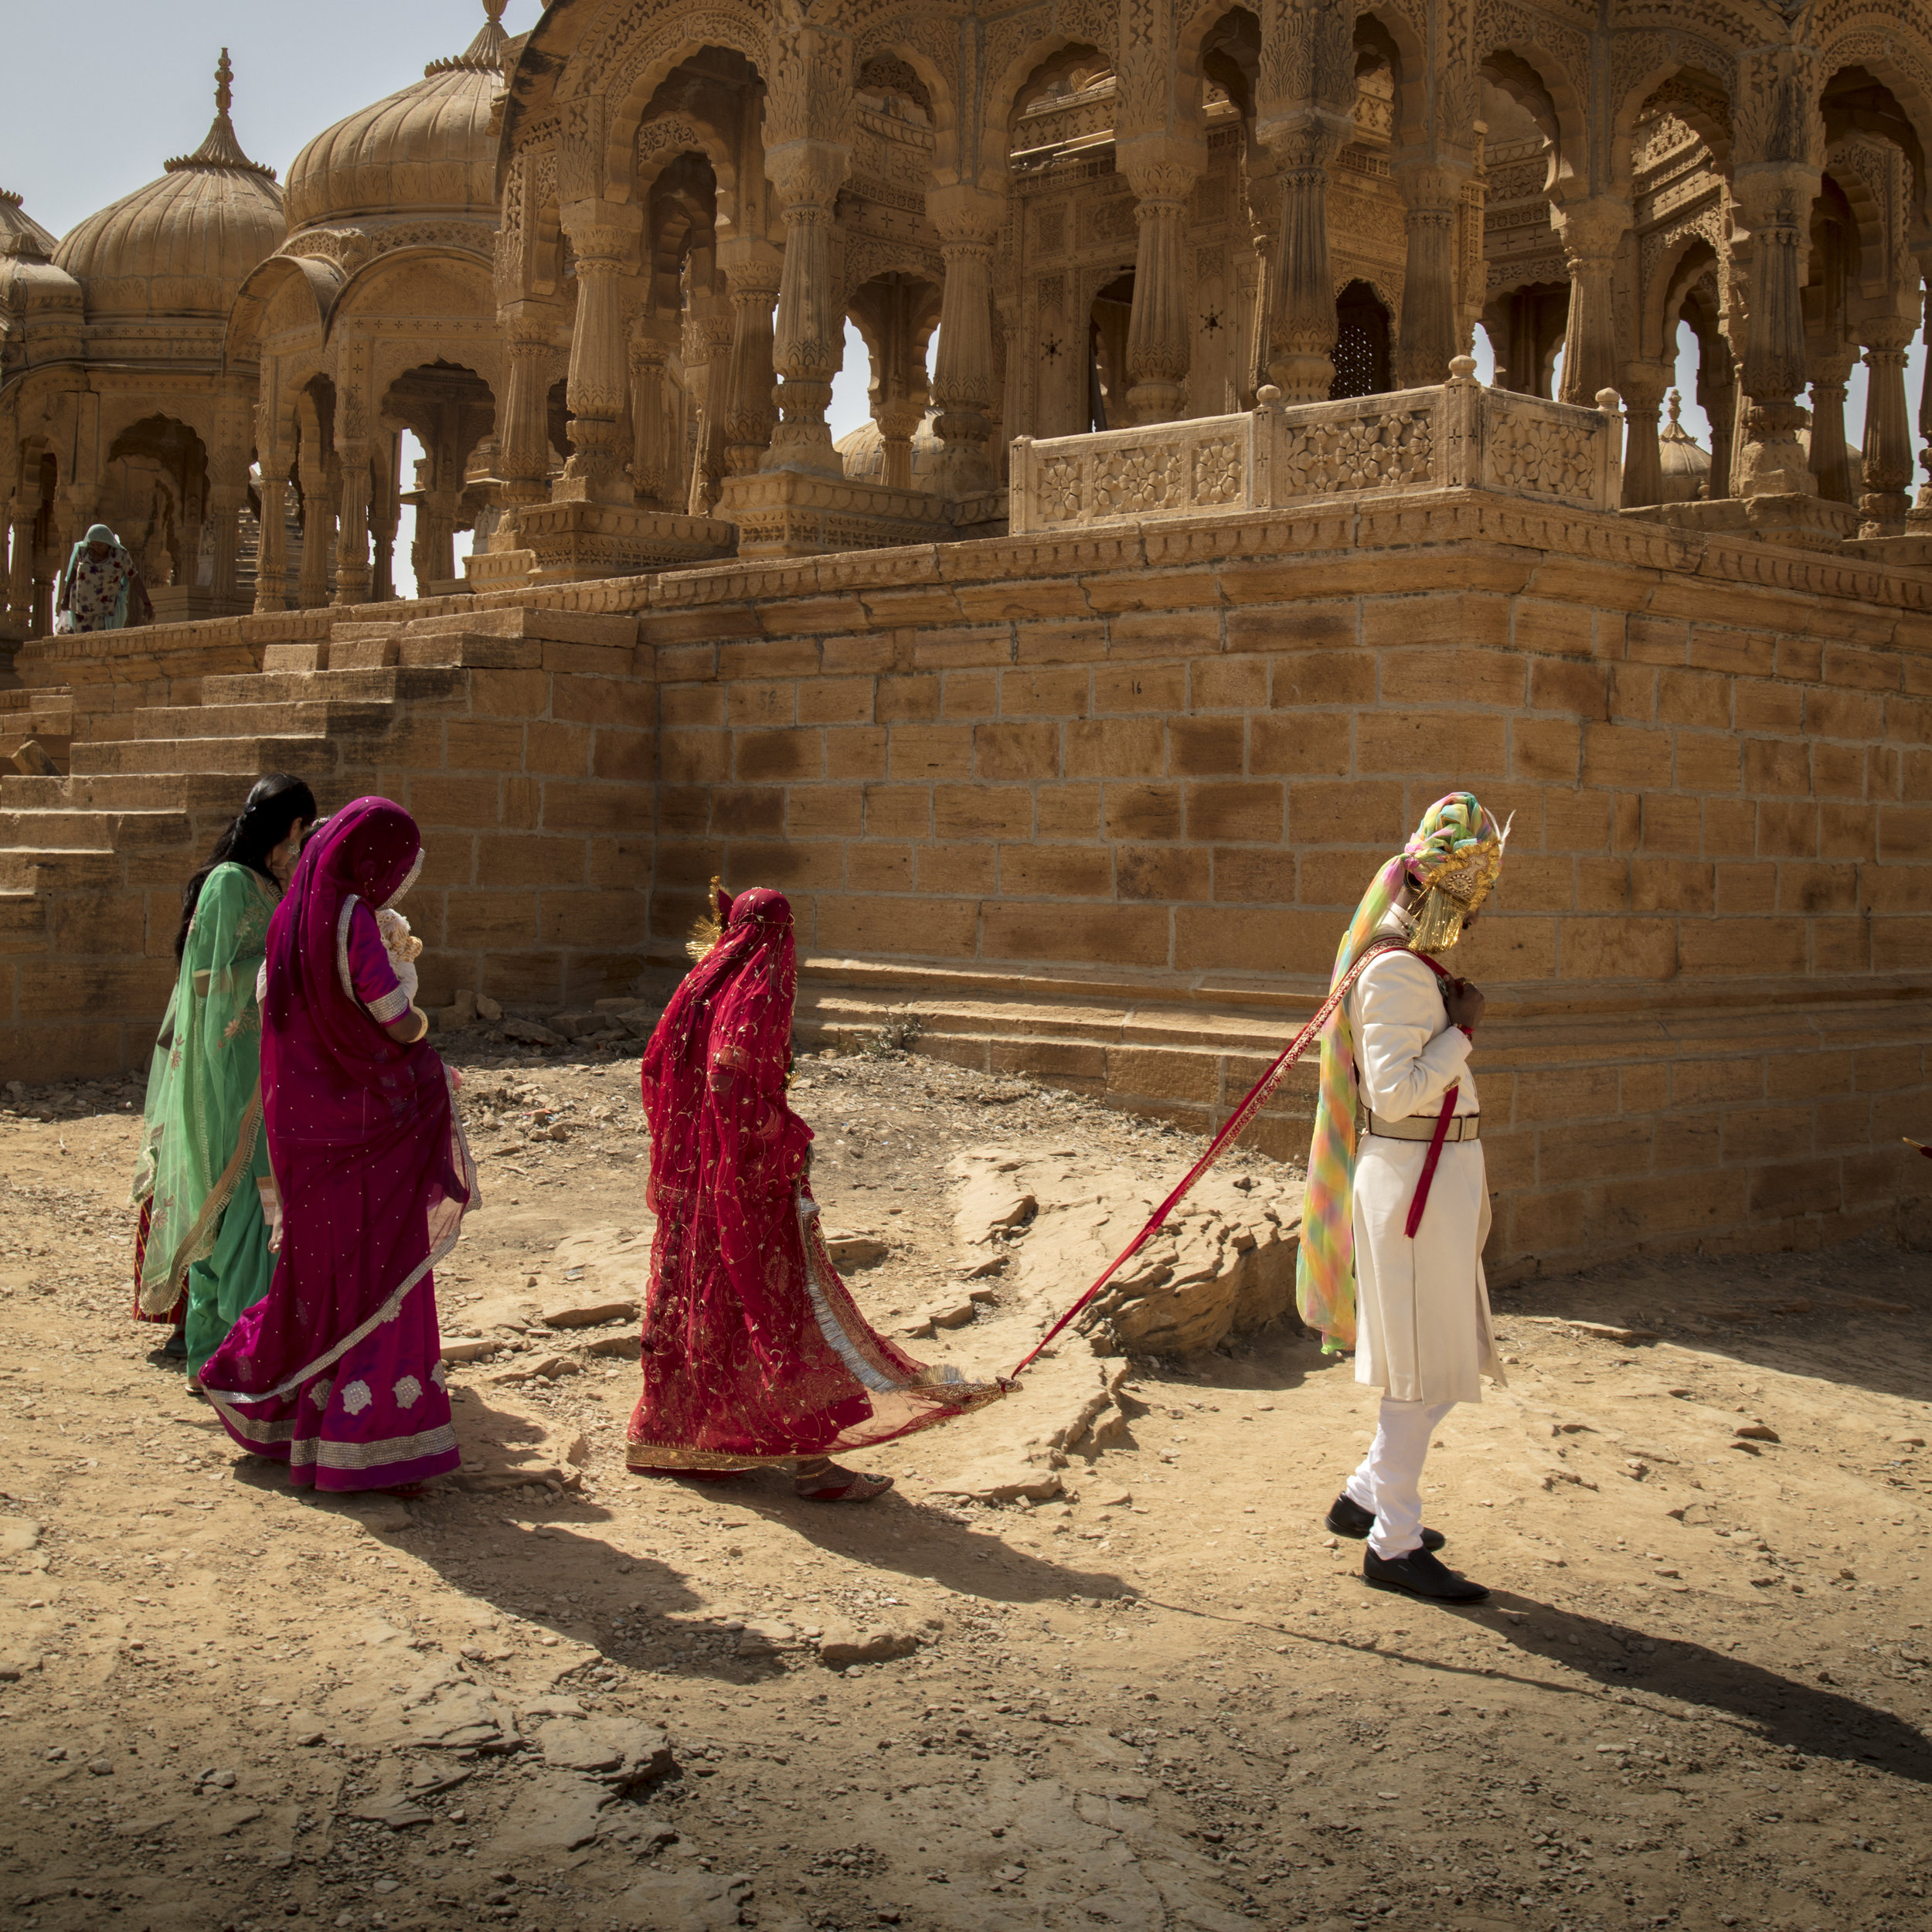 The Wedding Party, Jaisalmer, India.                                                                                © Russell Shakespeare 2019